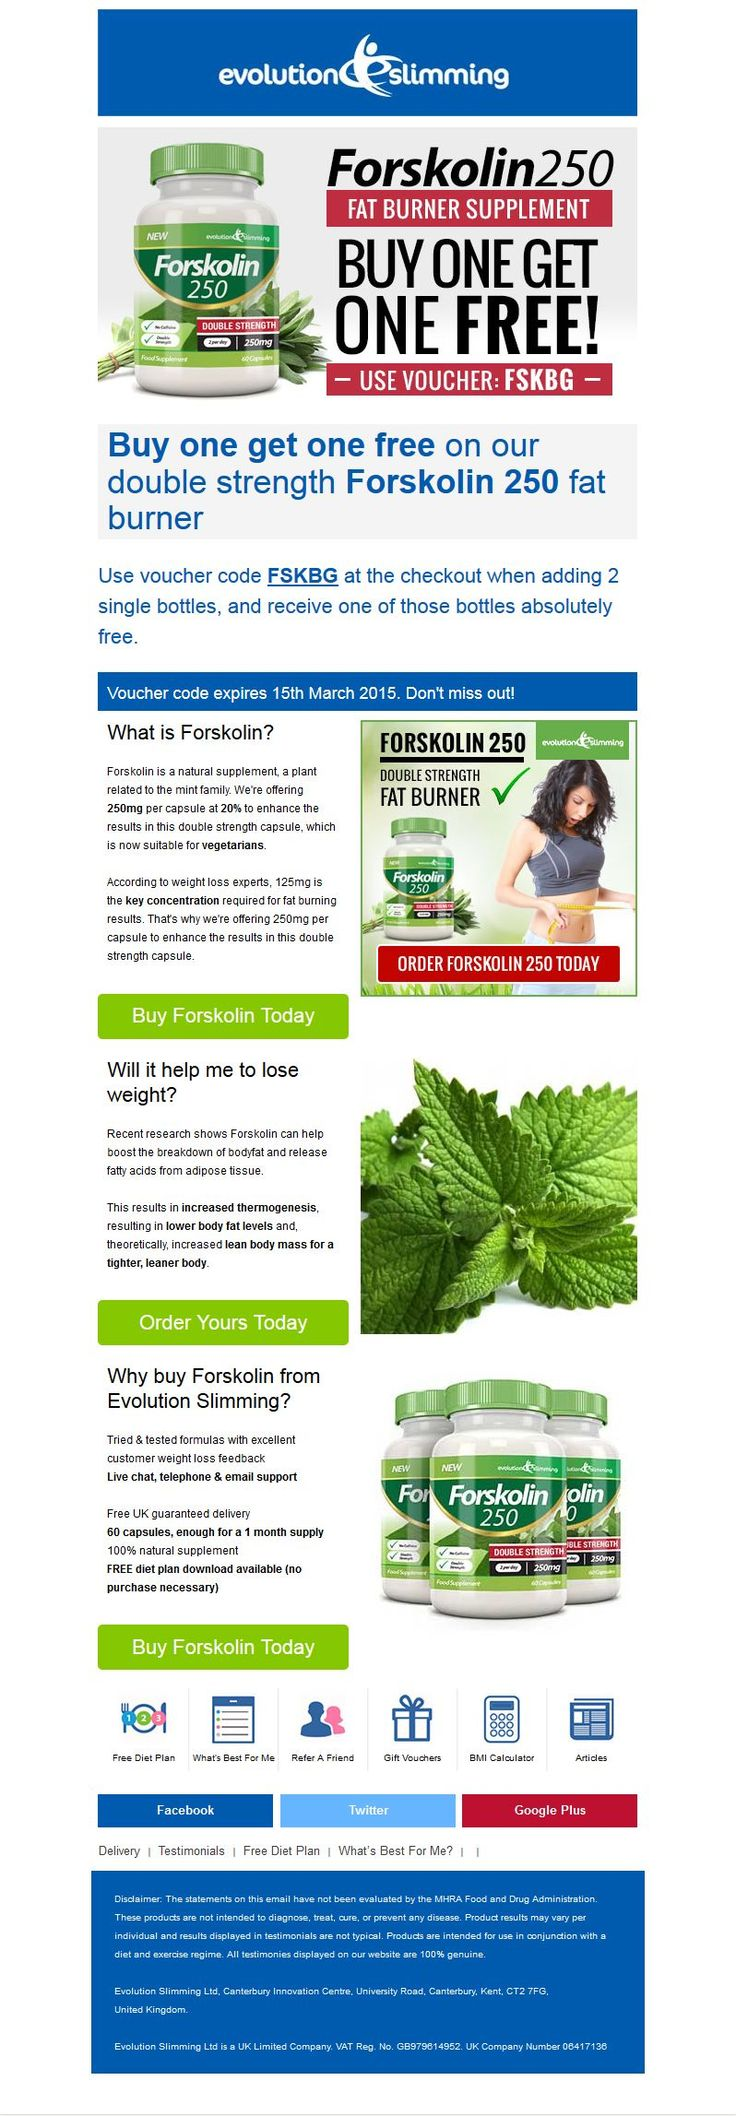 Forskolin is a natural supplement, a plant related to the mint family. Recent research shows Forskolin can help boost the breakdown of bodyfat and release fatty acids from adipose tissue.